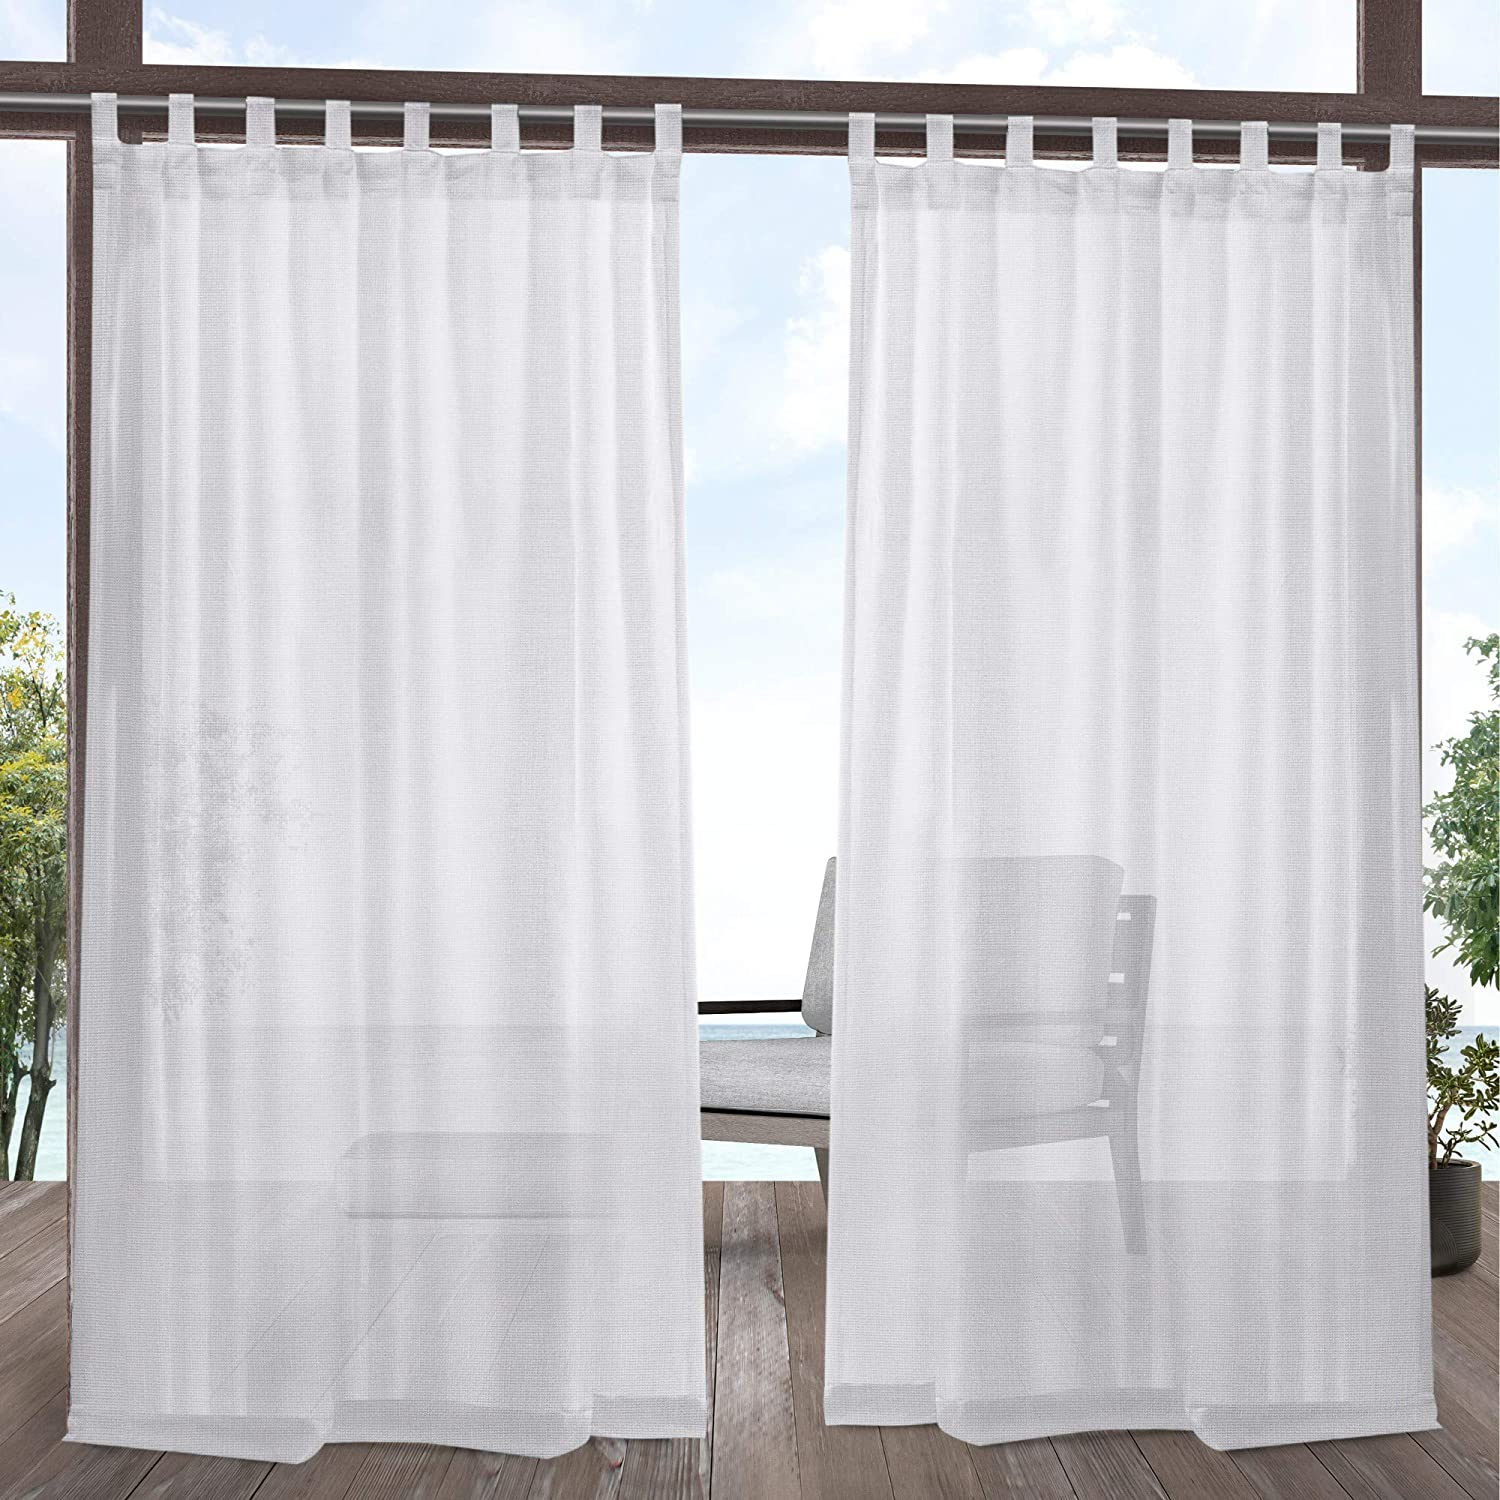 Exclusive Home Curtains Miami Sheer Textured Indoor/Outdoor Tab Top Curtain Panel Pair, 54x108, Winter White